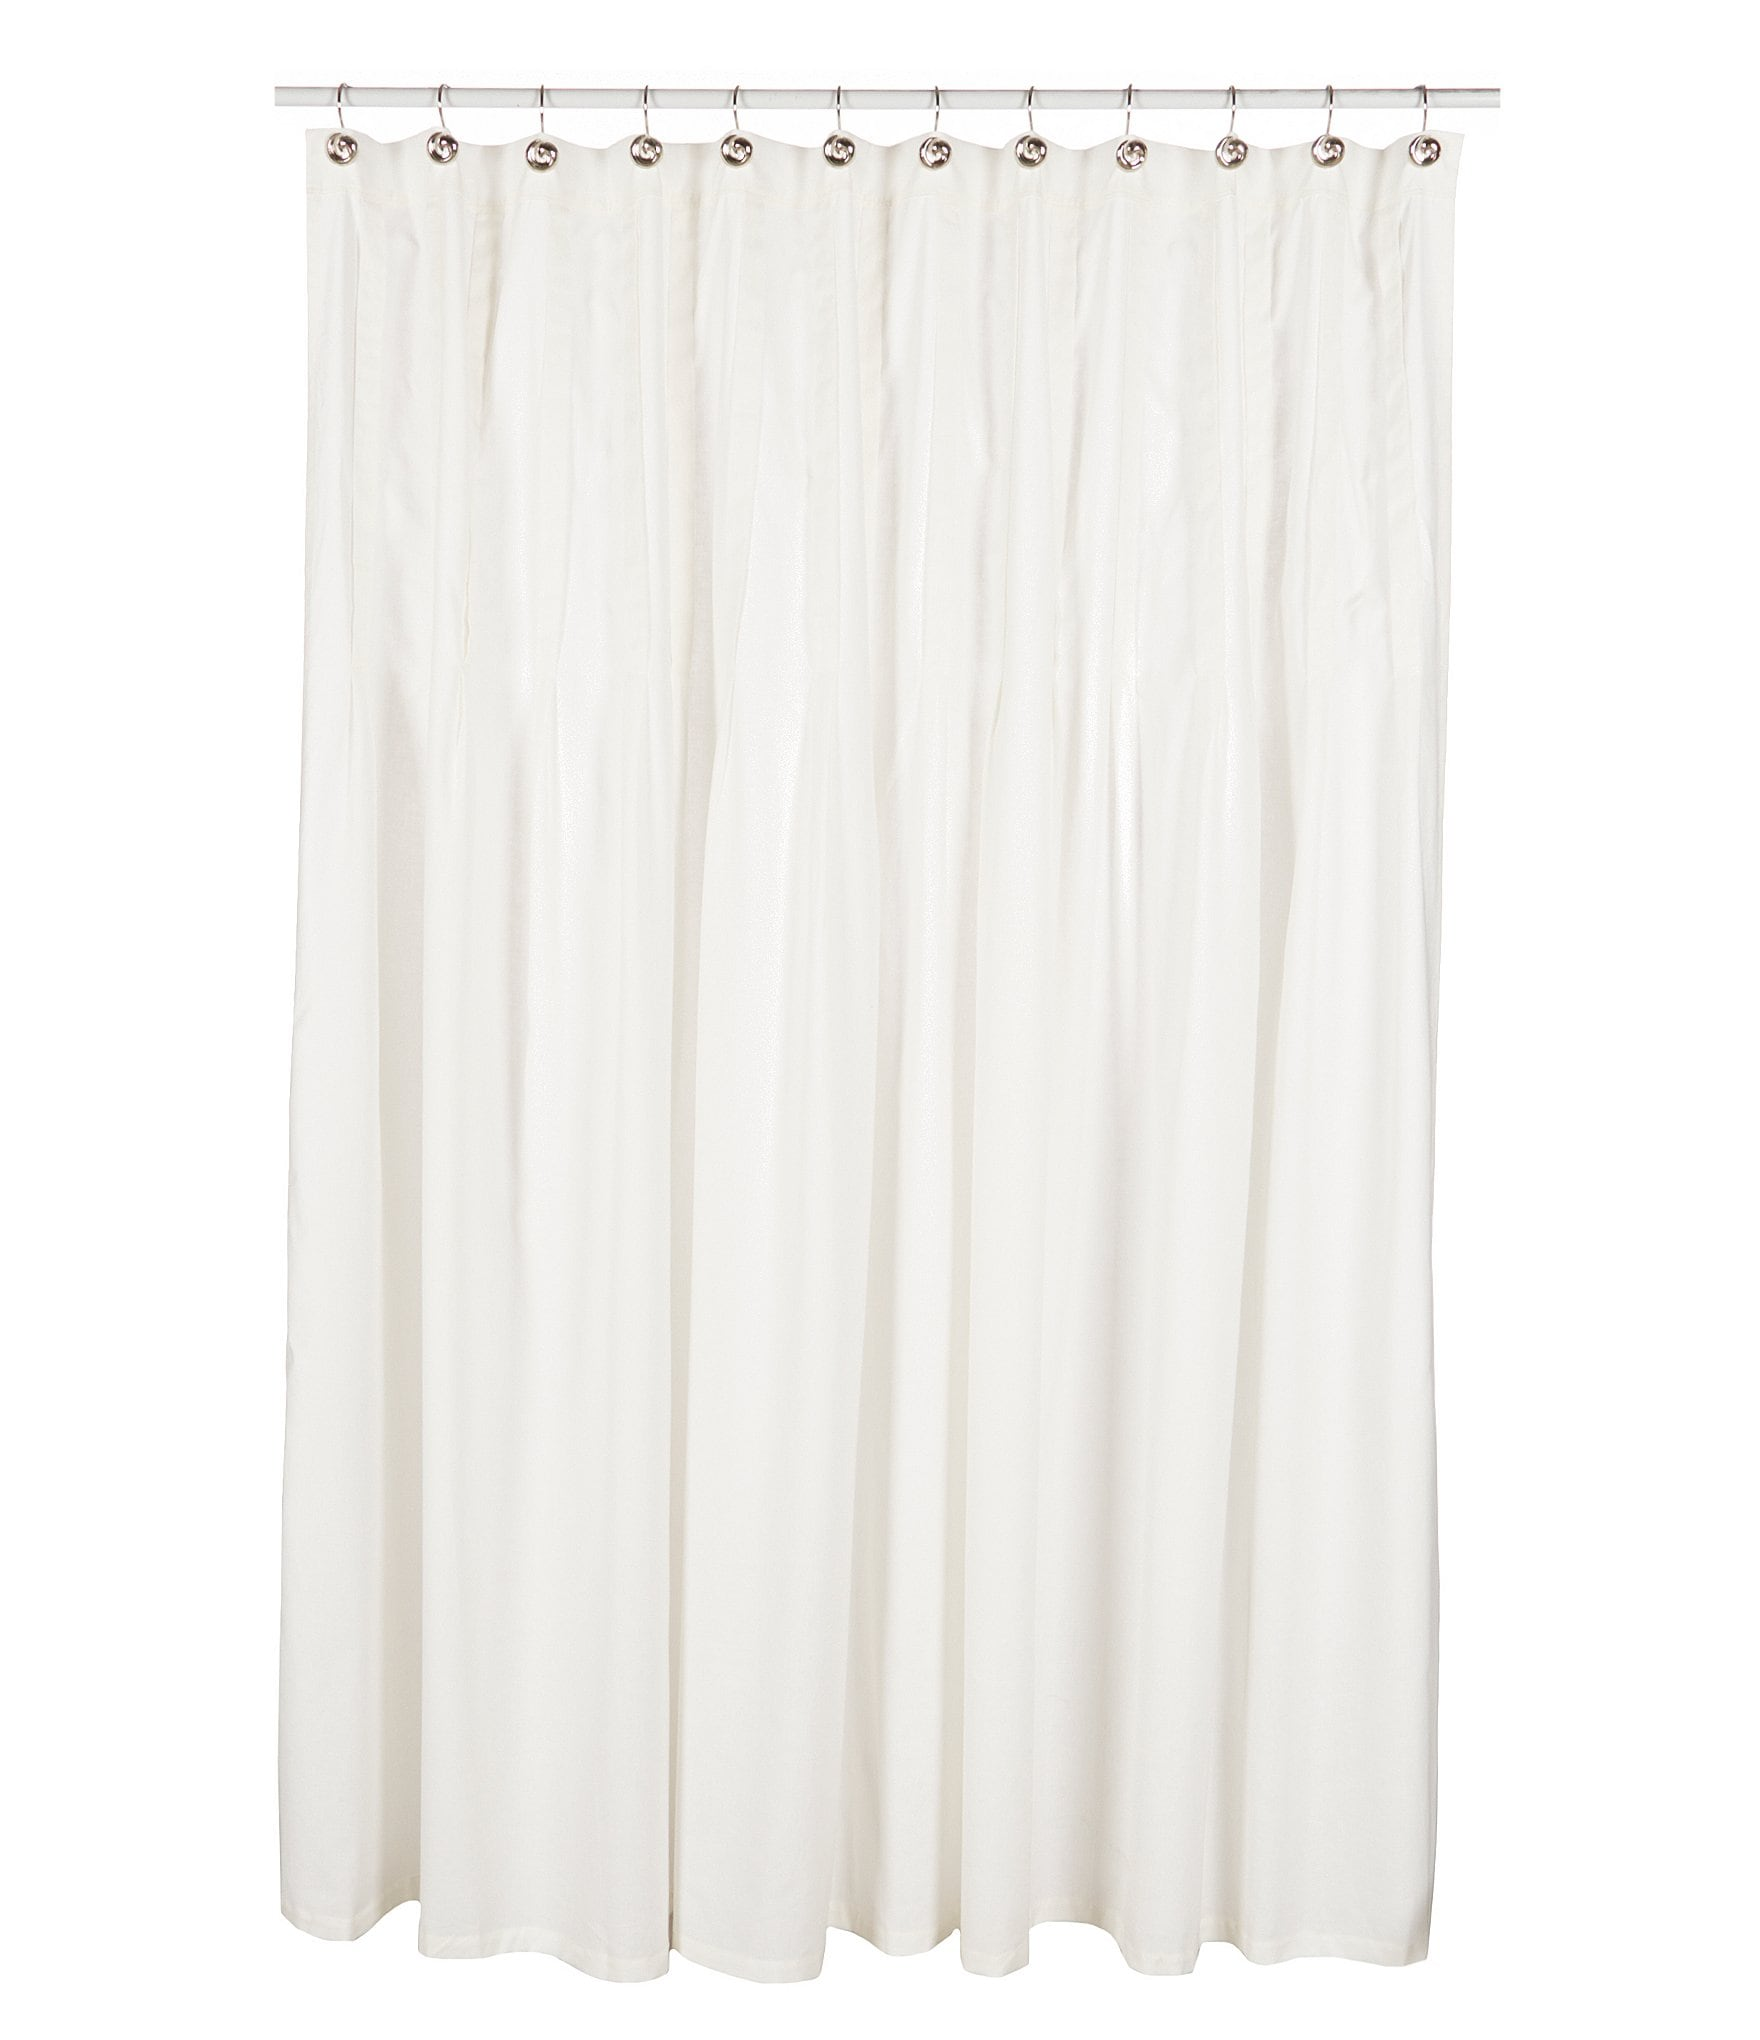 Southern Living Home Bath Personal Care Shower Curtains